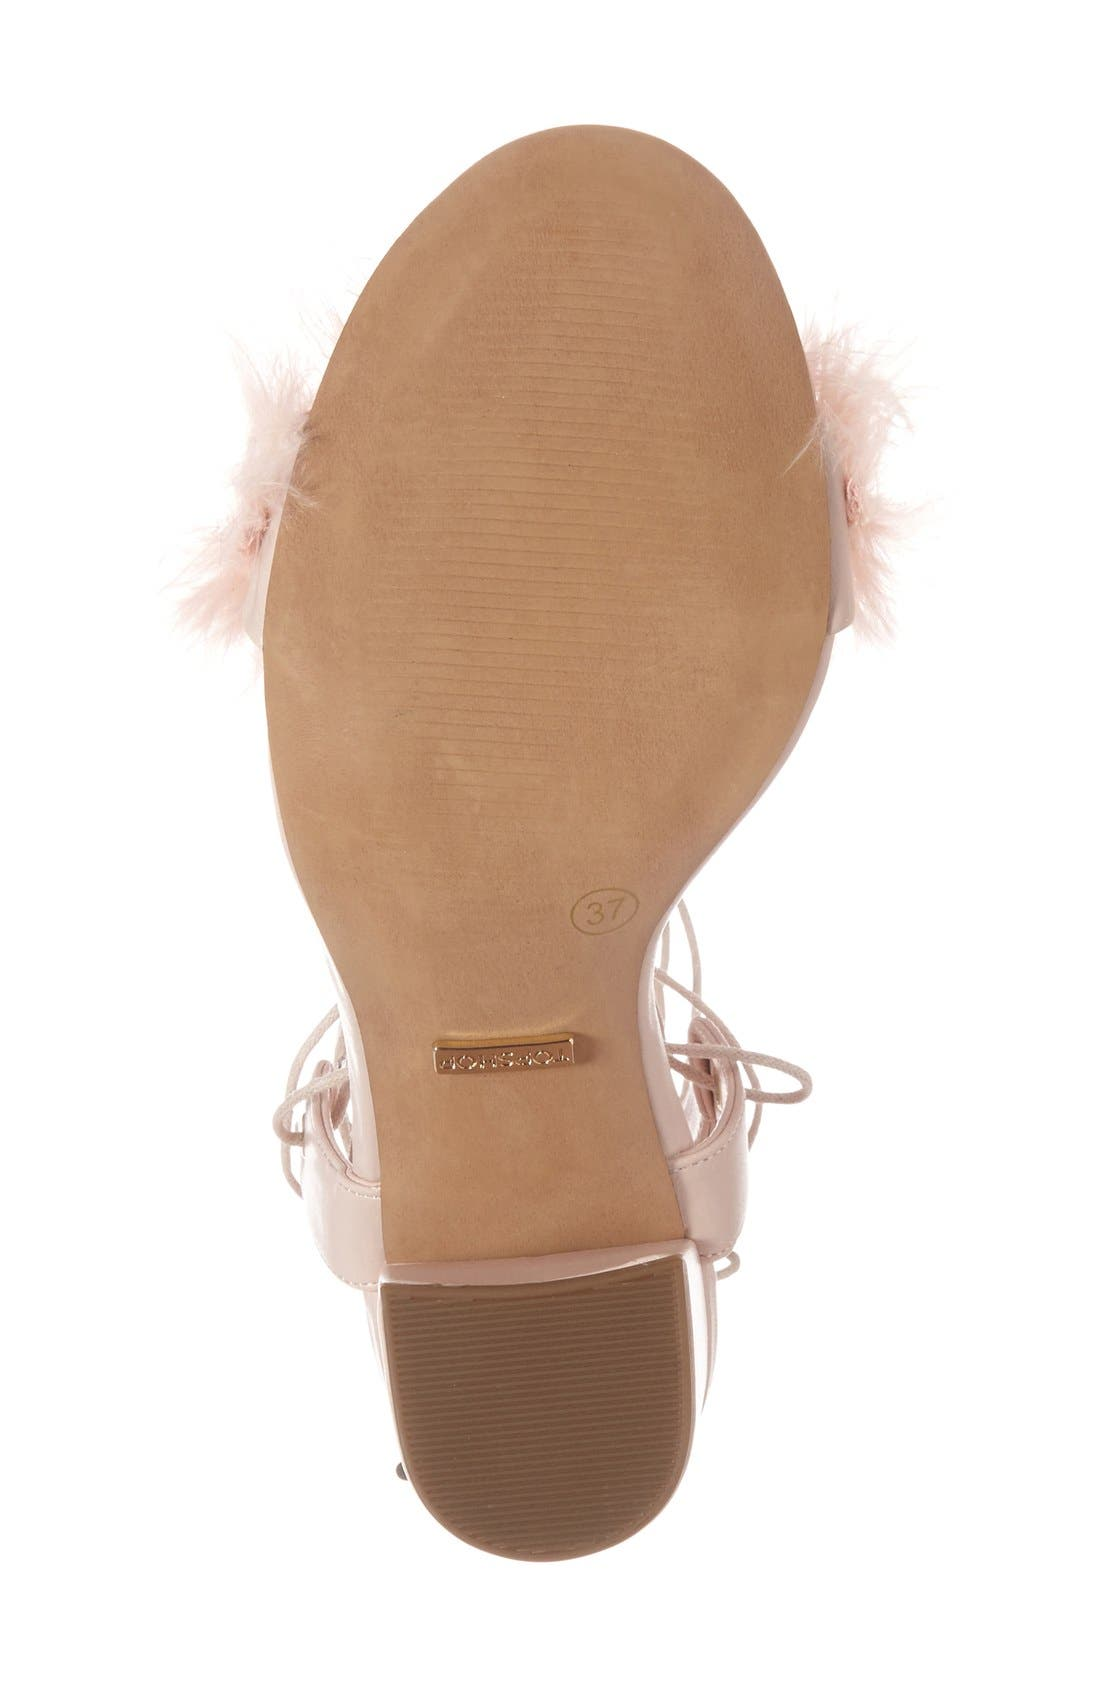 Marabou Feather Lace-Up Sandal,                             Alternate thumbnail 4, color,                             Nude